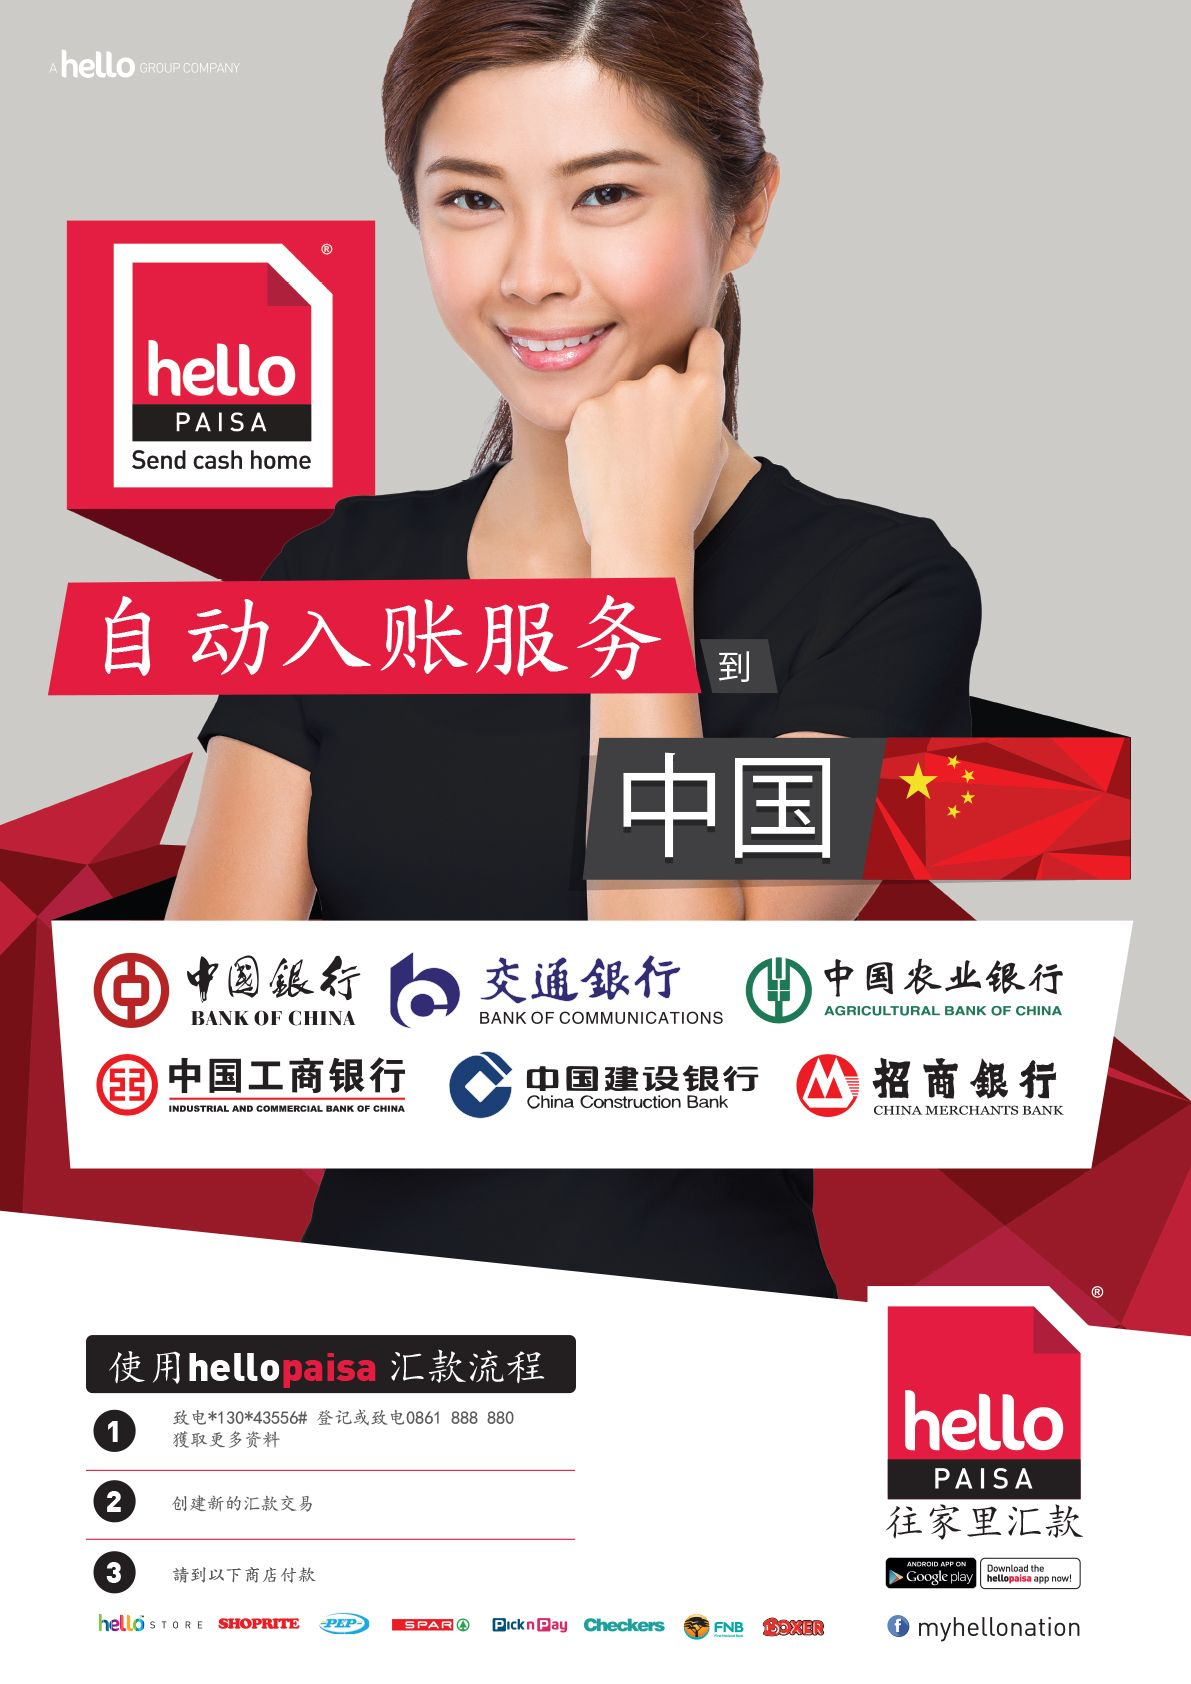 Send Money To China With Hello Paisa Www Hellopaisa Co Za Design By Group Marketing